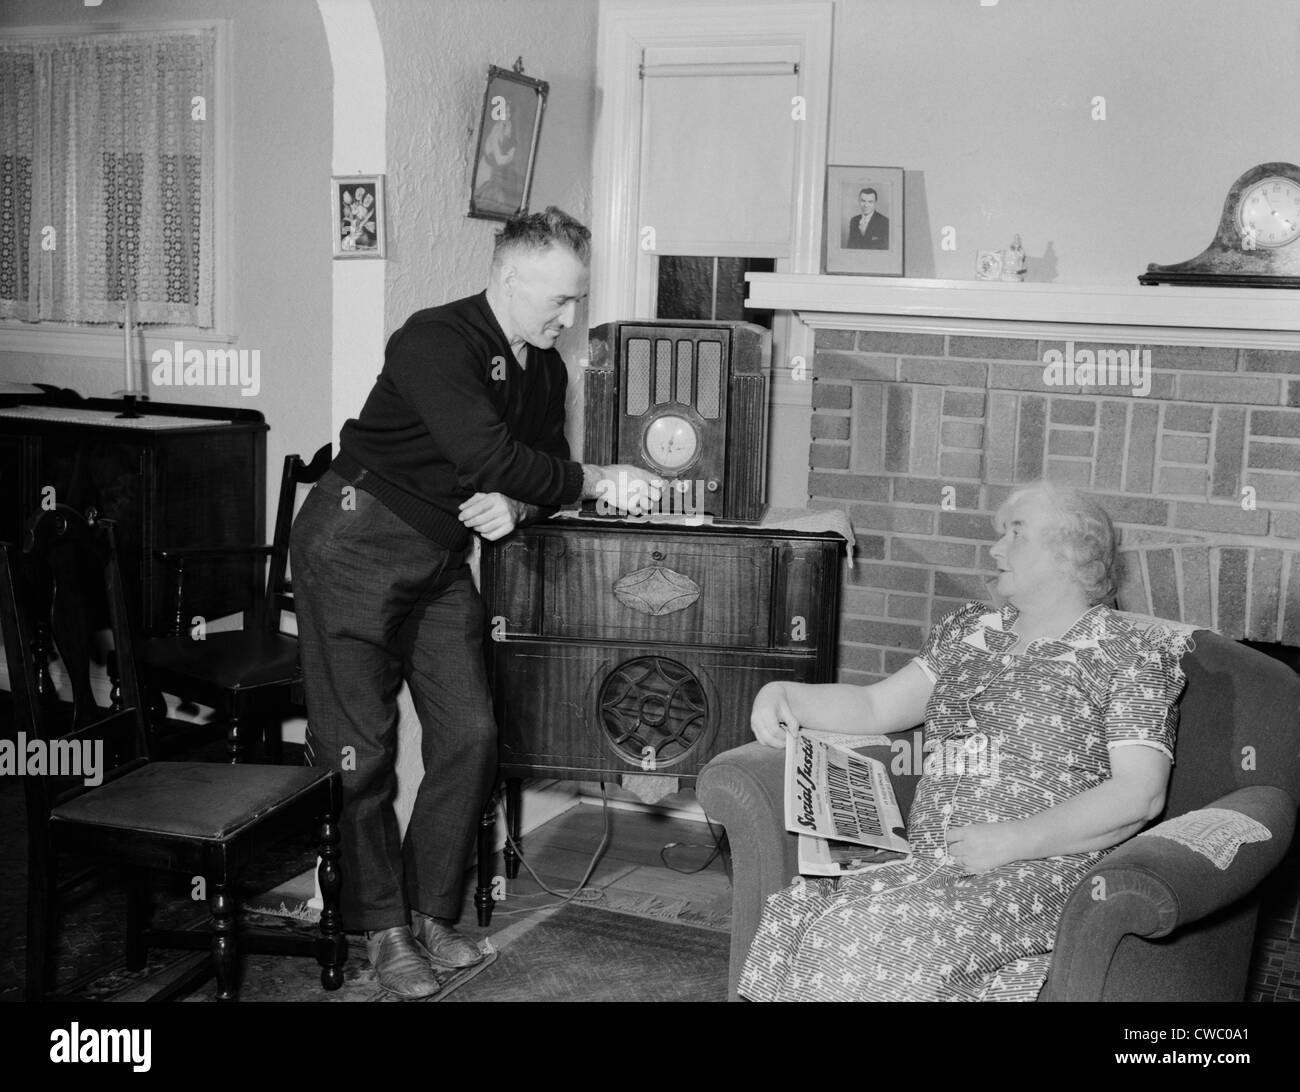 A husband tunes the radio while his wife holds populist right-wing radio priest, Father Coughlin's newspaper - Stock Image